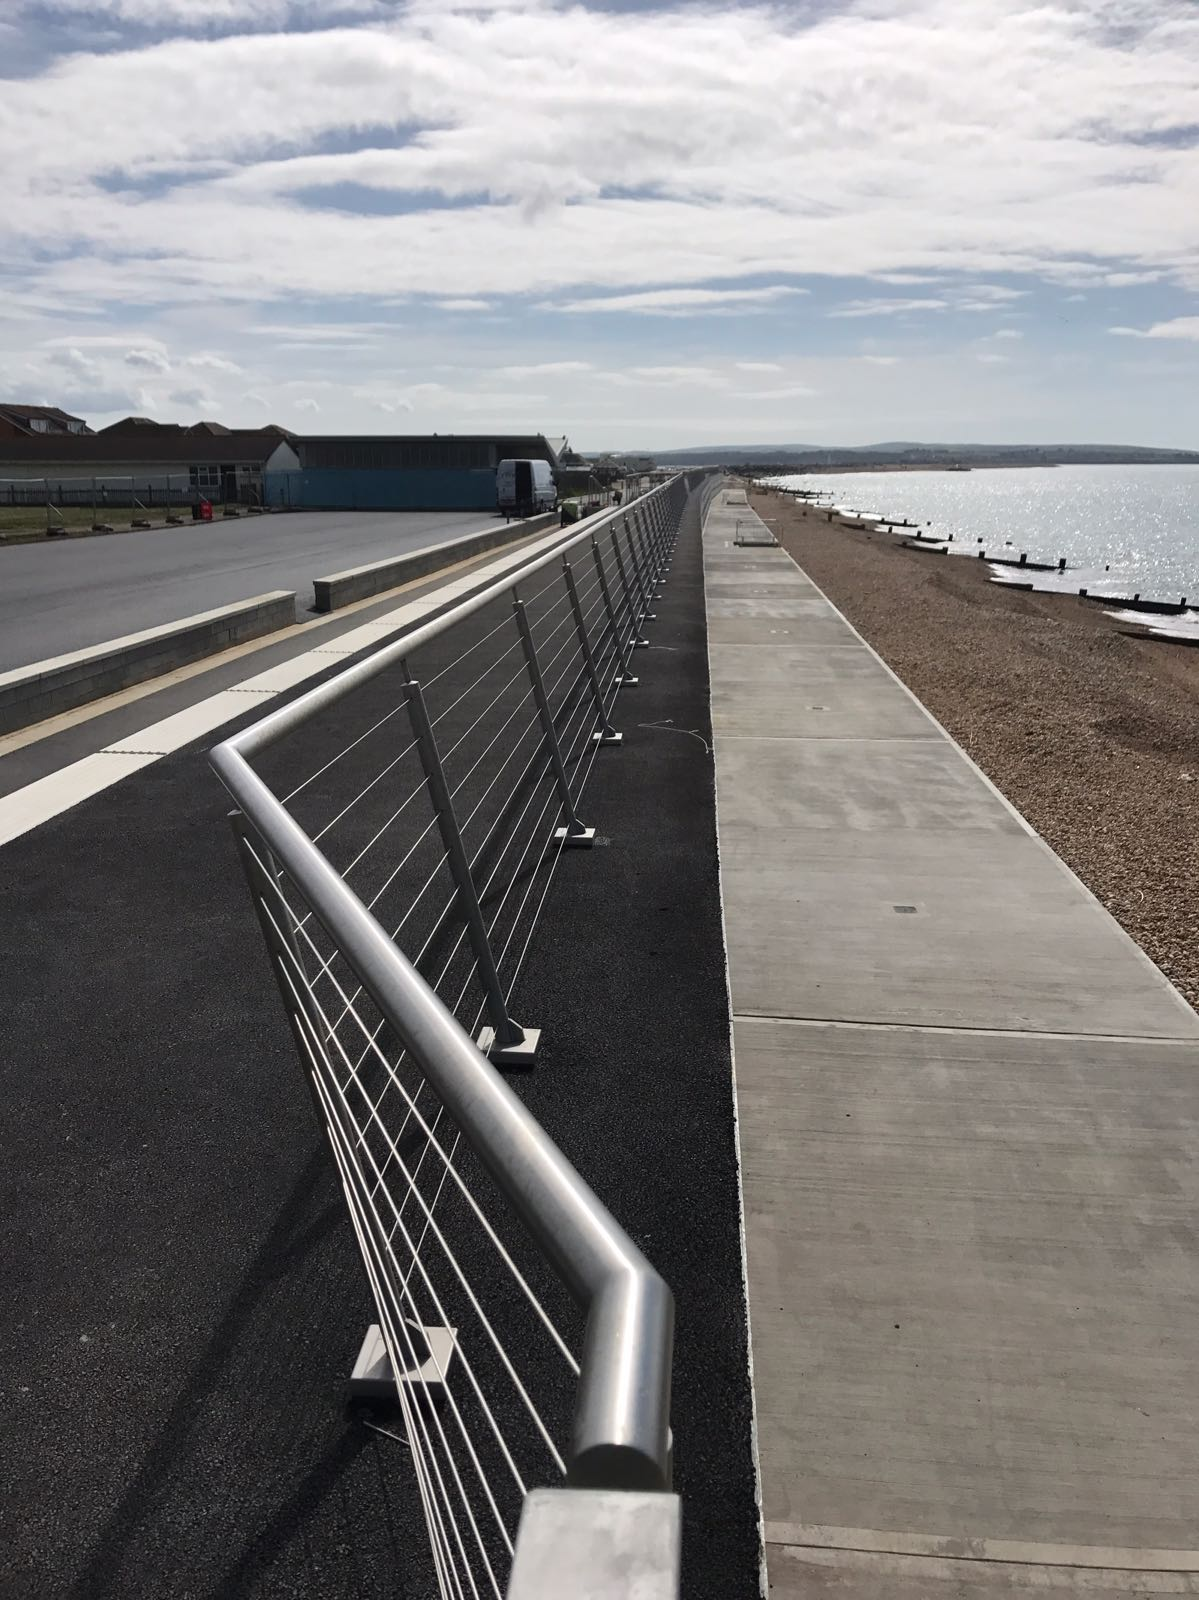 Horizontal stainless steel balustrade at seafront